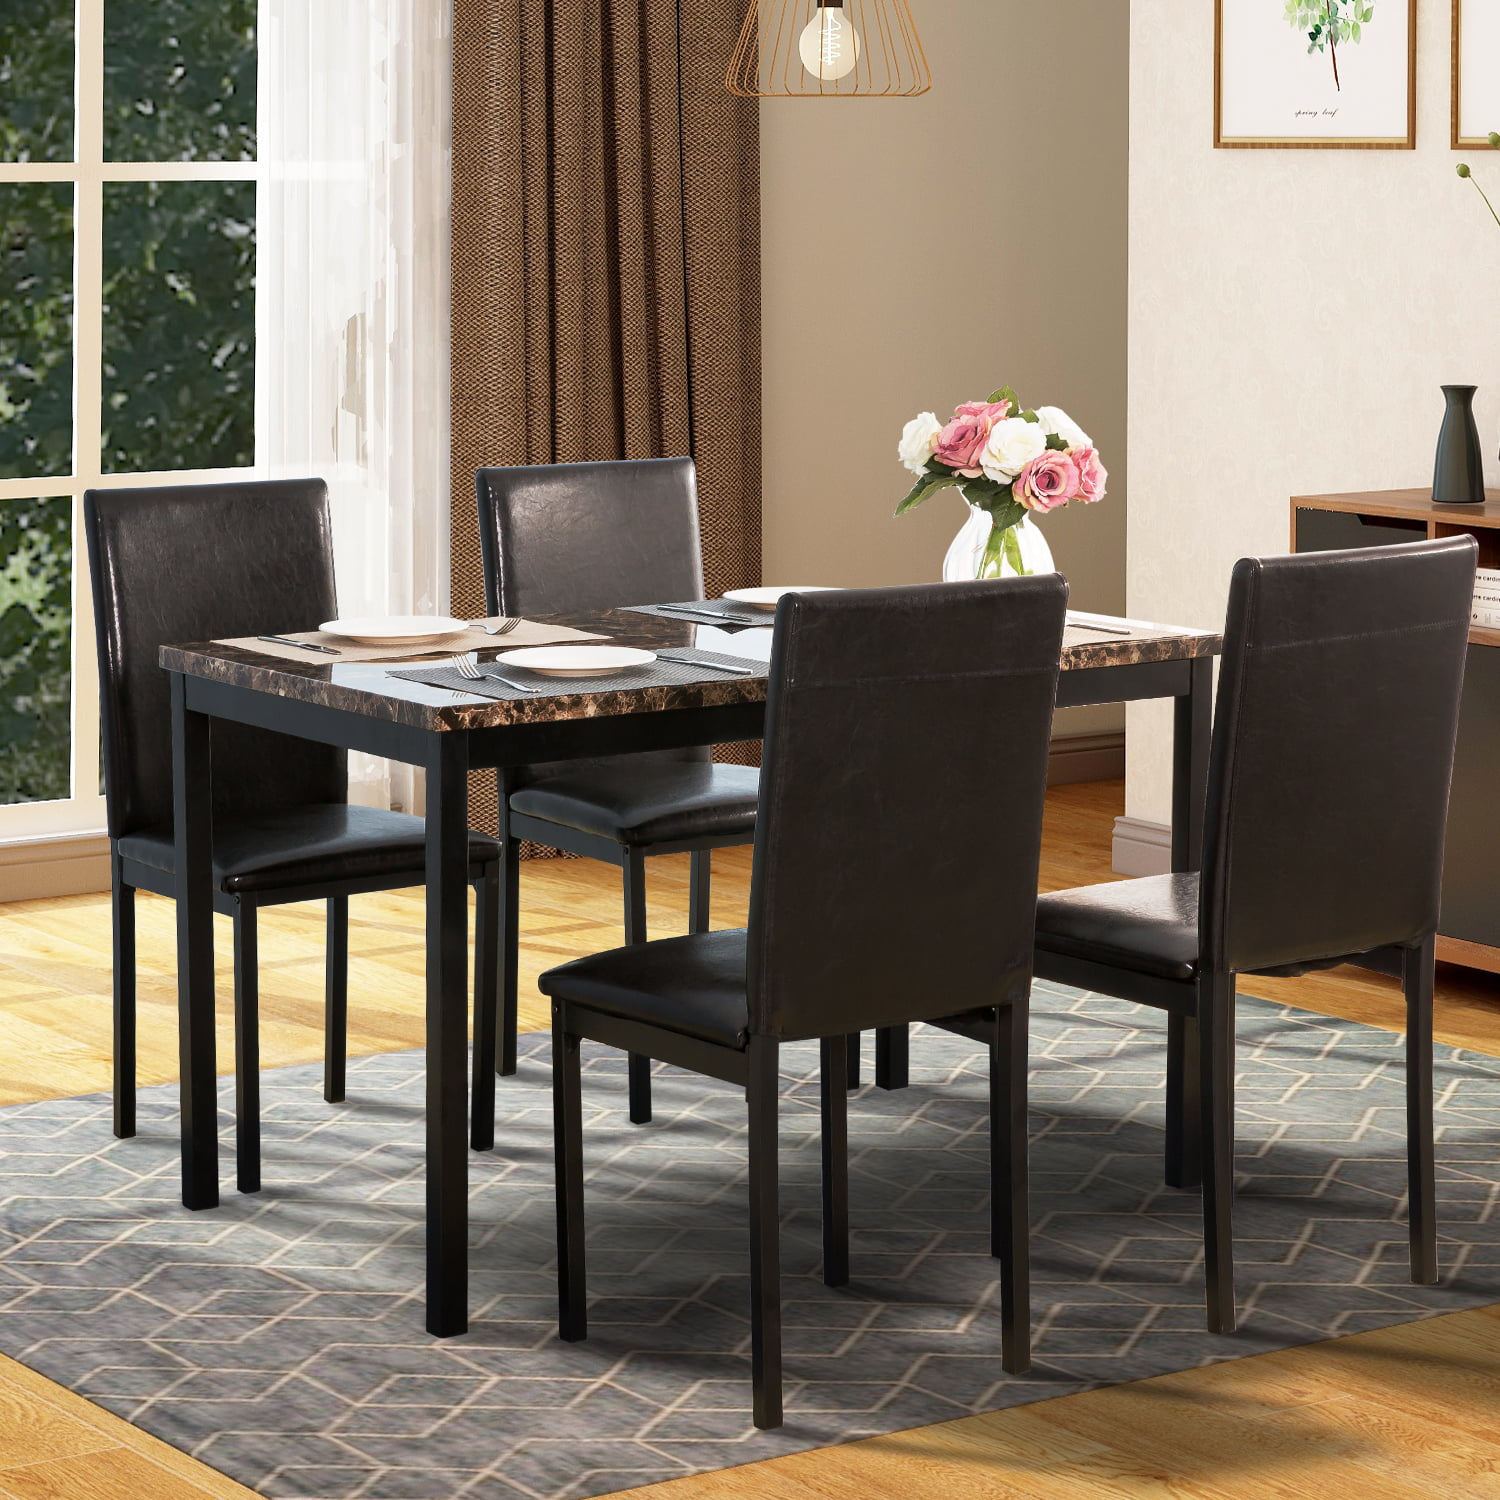 Harper & Bright Designs 5-Piece Faux Marble and PU Leather Dining Set -  Walmart.com